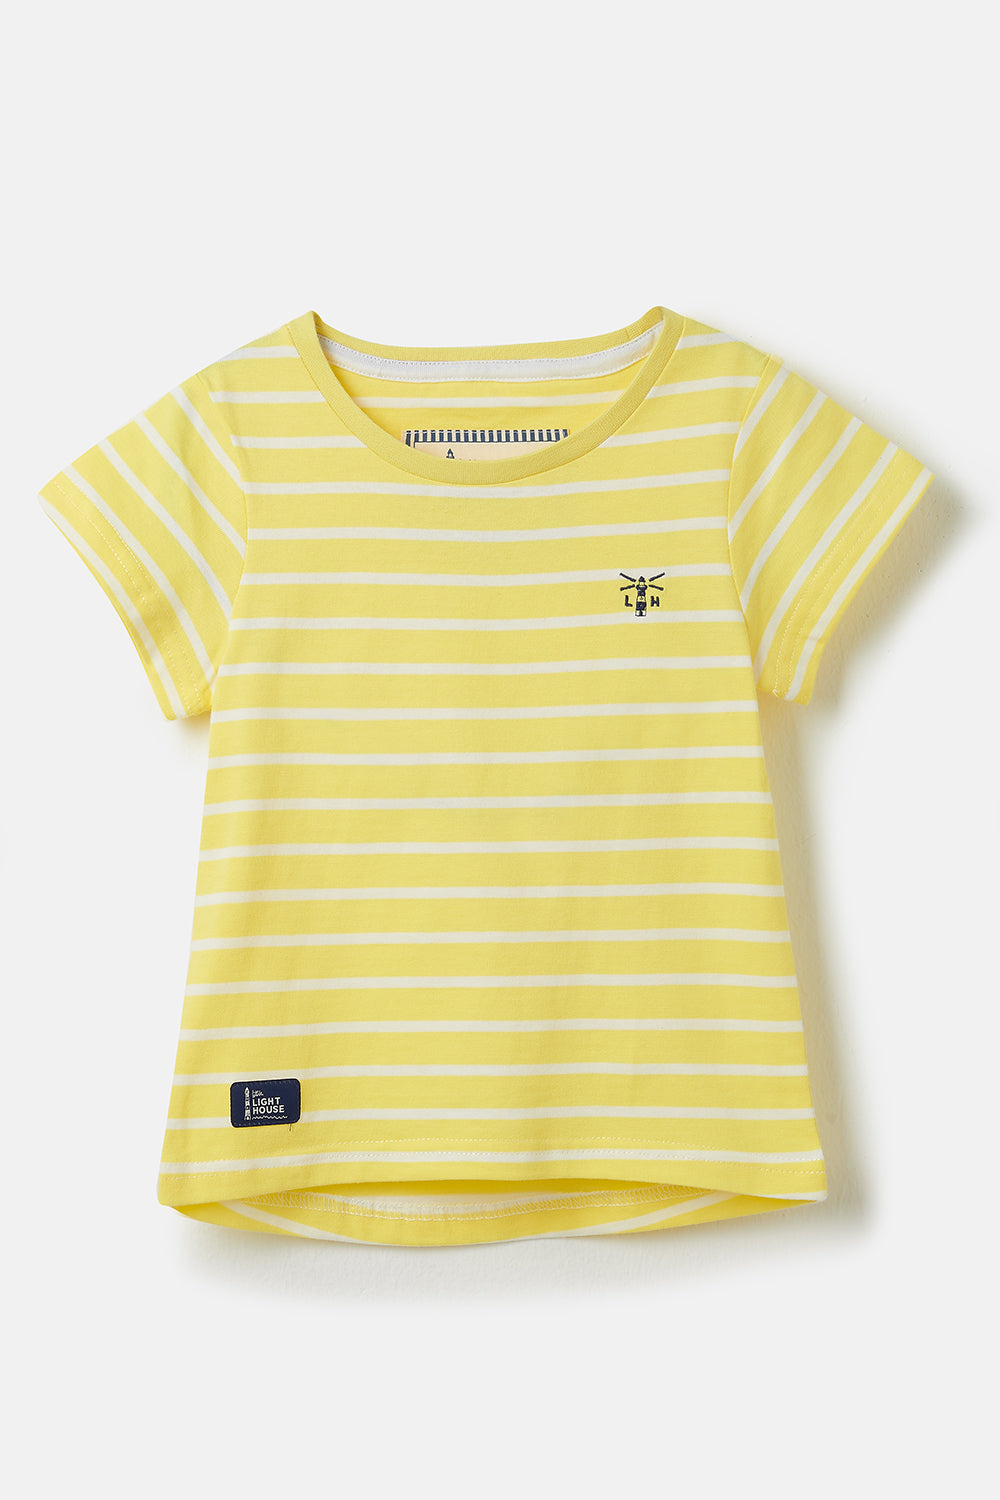 Causeway Short Sleeve - Lemon Stripe